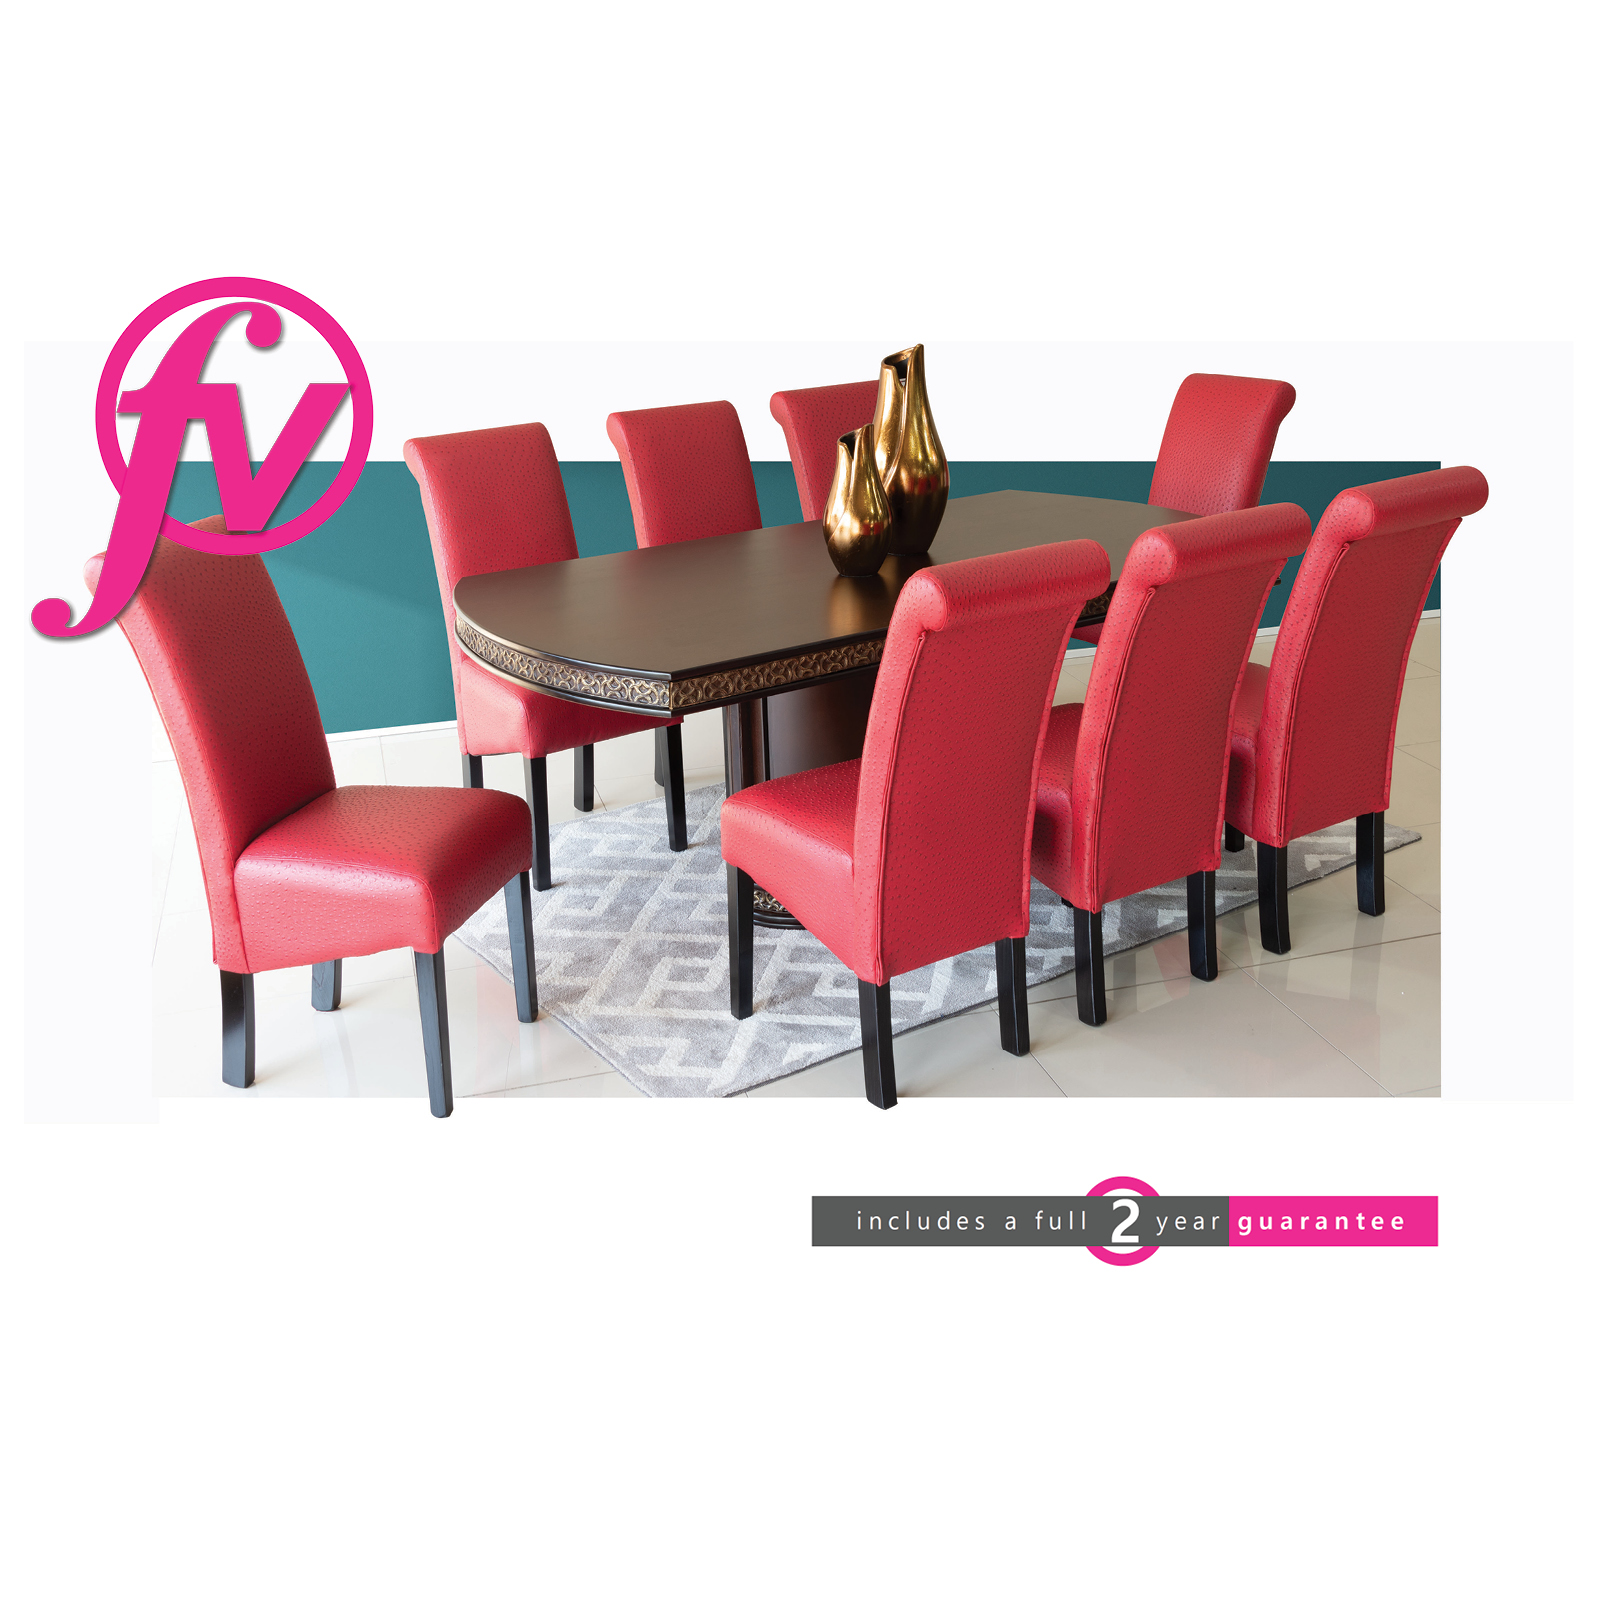 Duke Dining Room Suite 8 Seater With Red Chairs